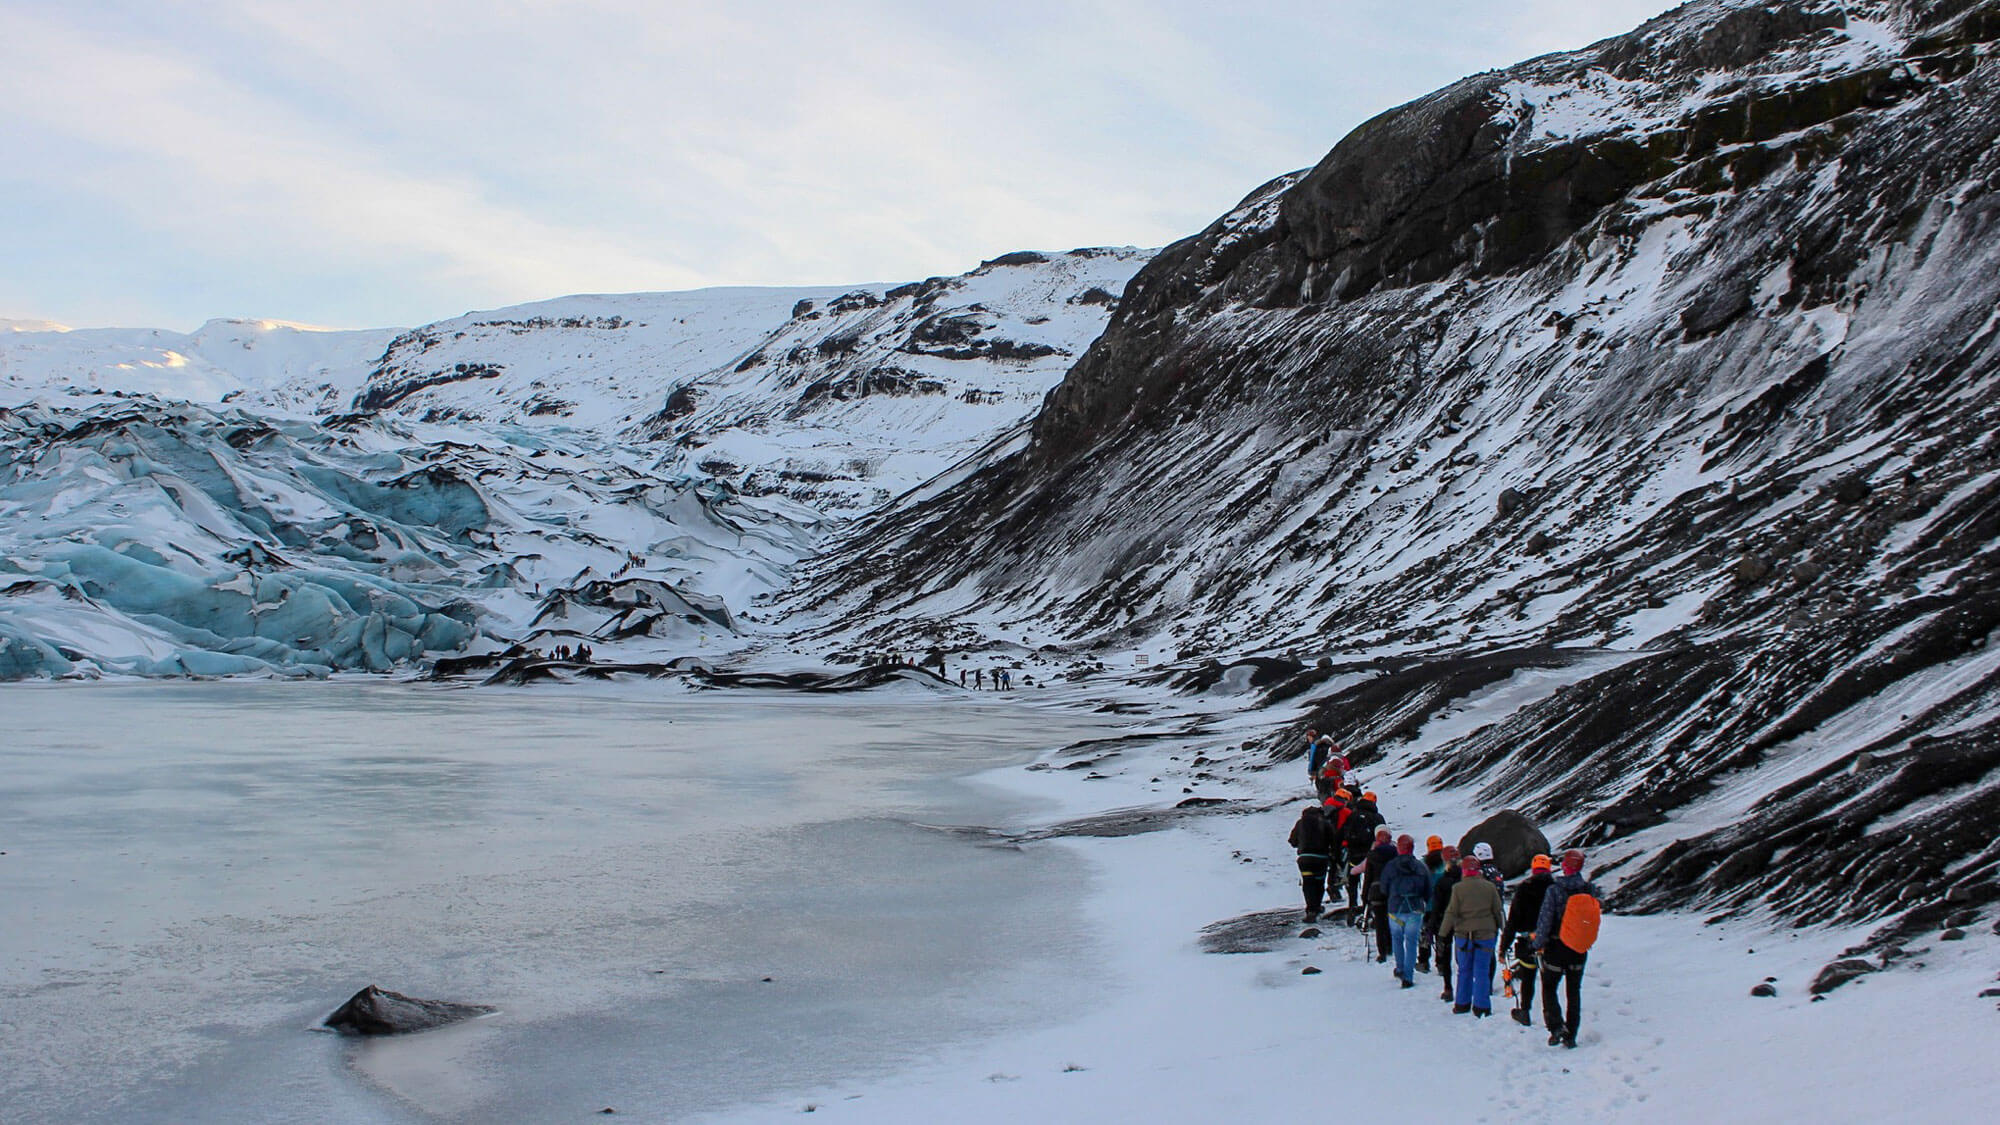 Derby Uni Iceland 2018 Overview - 40 students, 7 nights! Why you should get involved with the International Travel Awards.